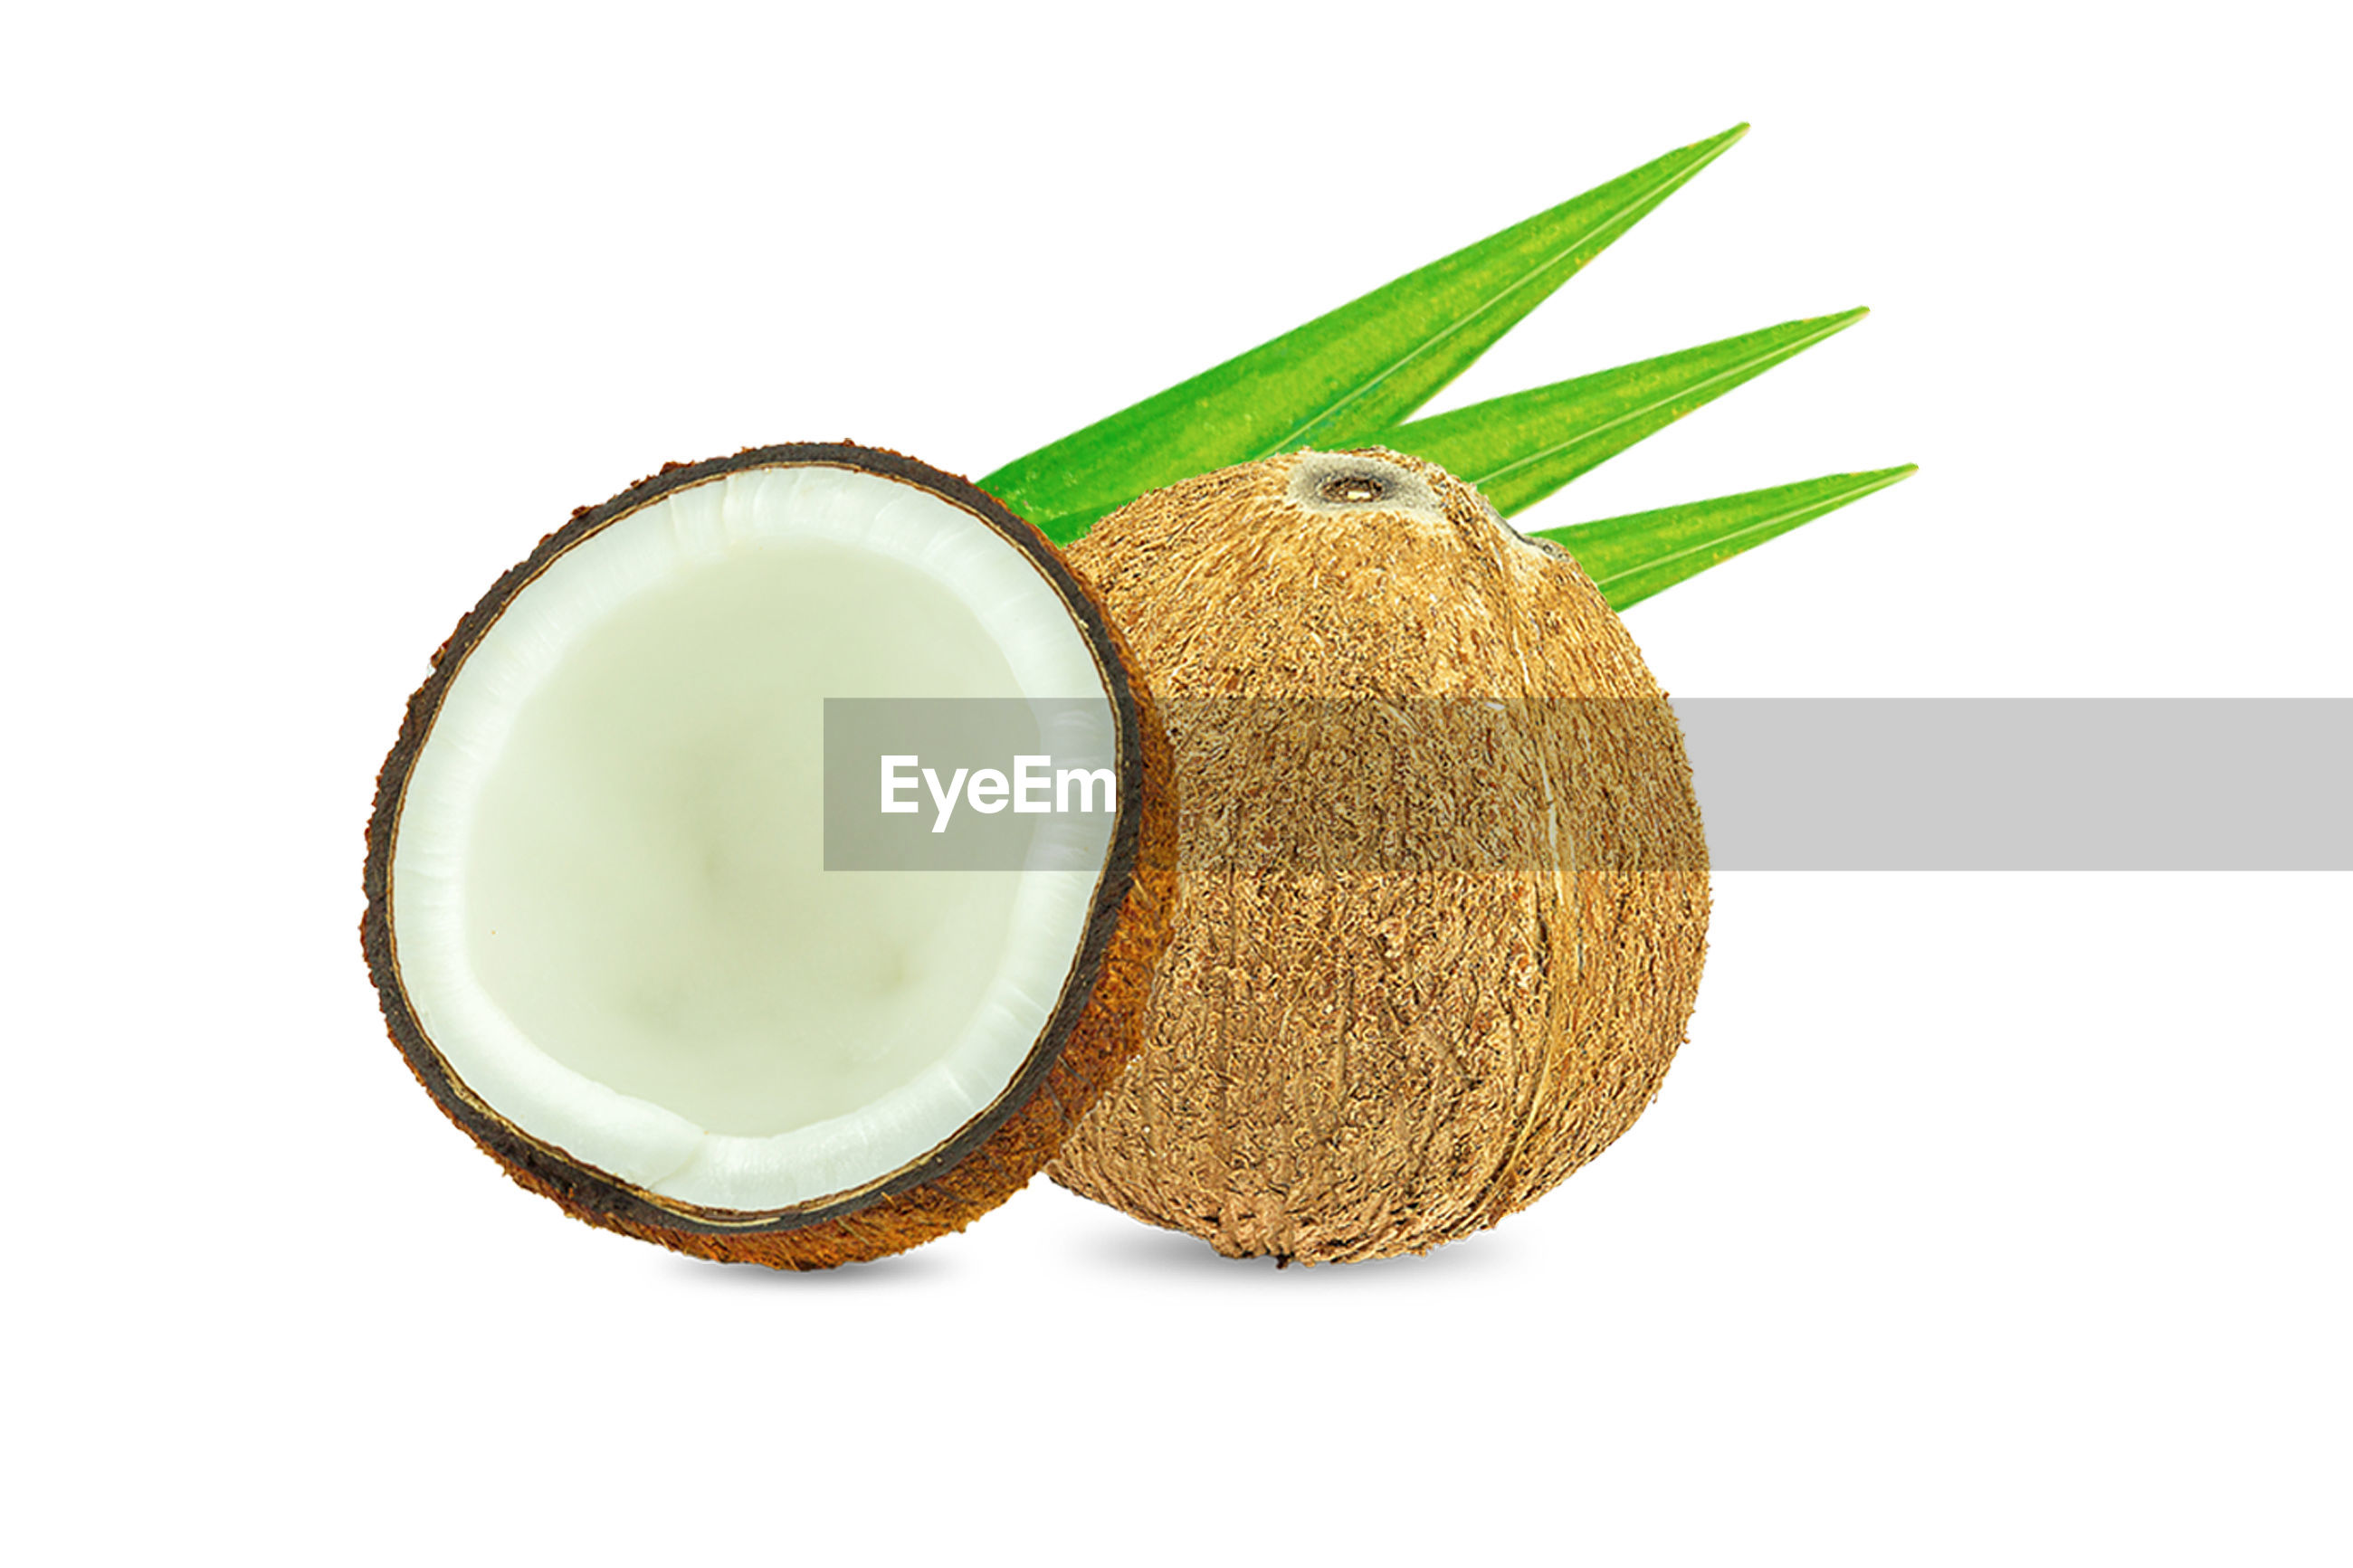 Coconut pieces isolated on a white background.healthy food, skin care concept.